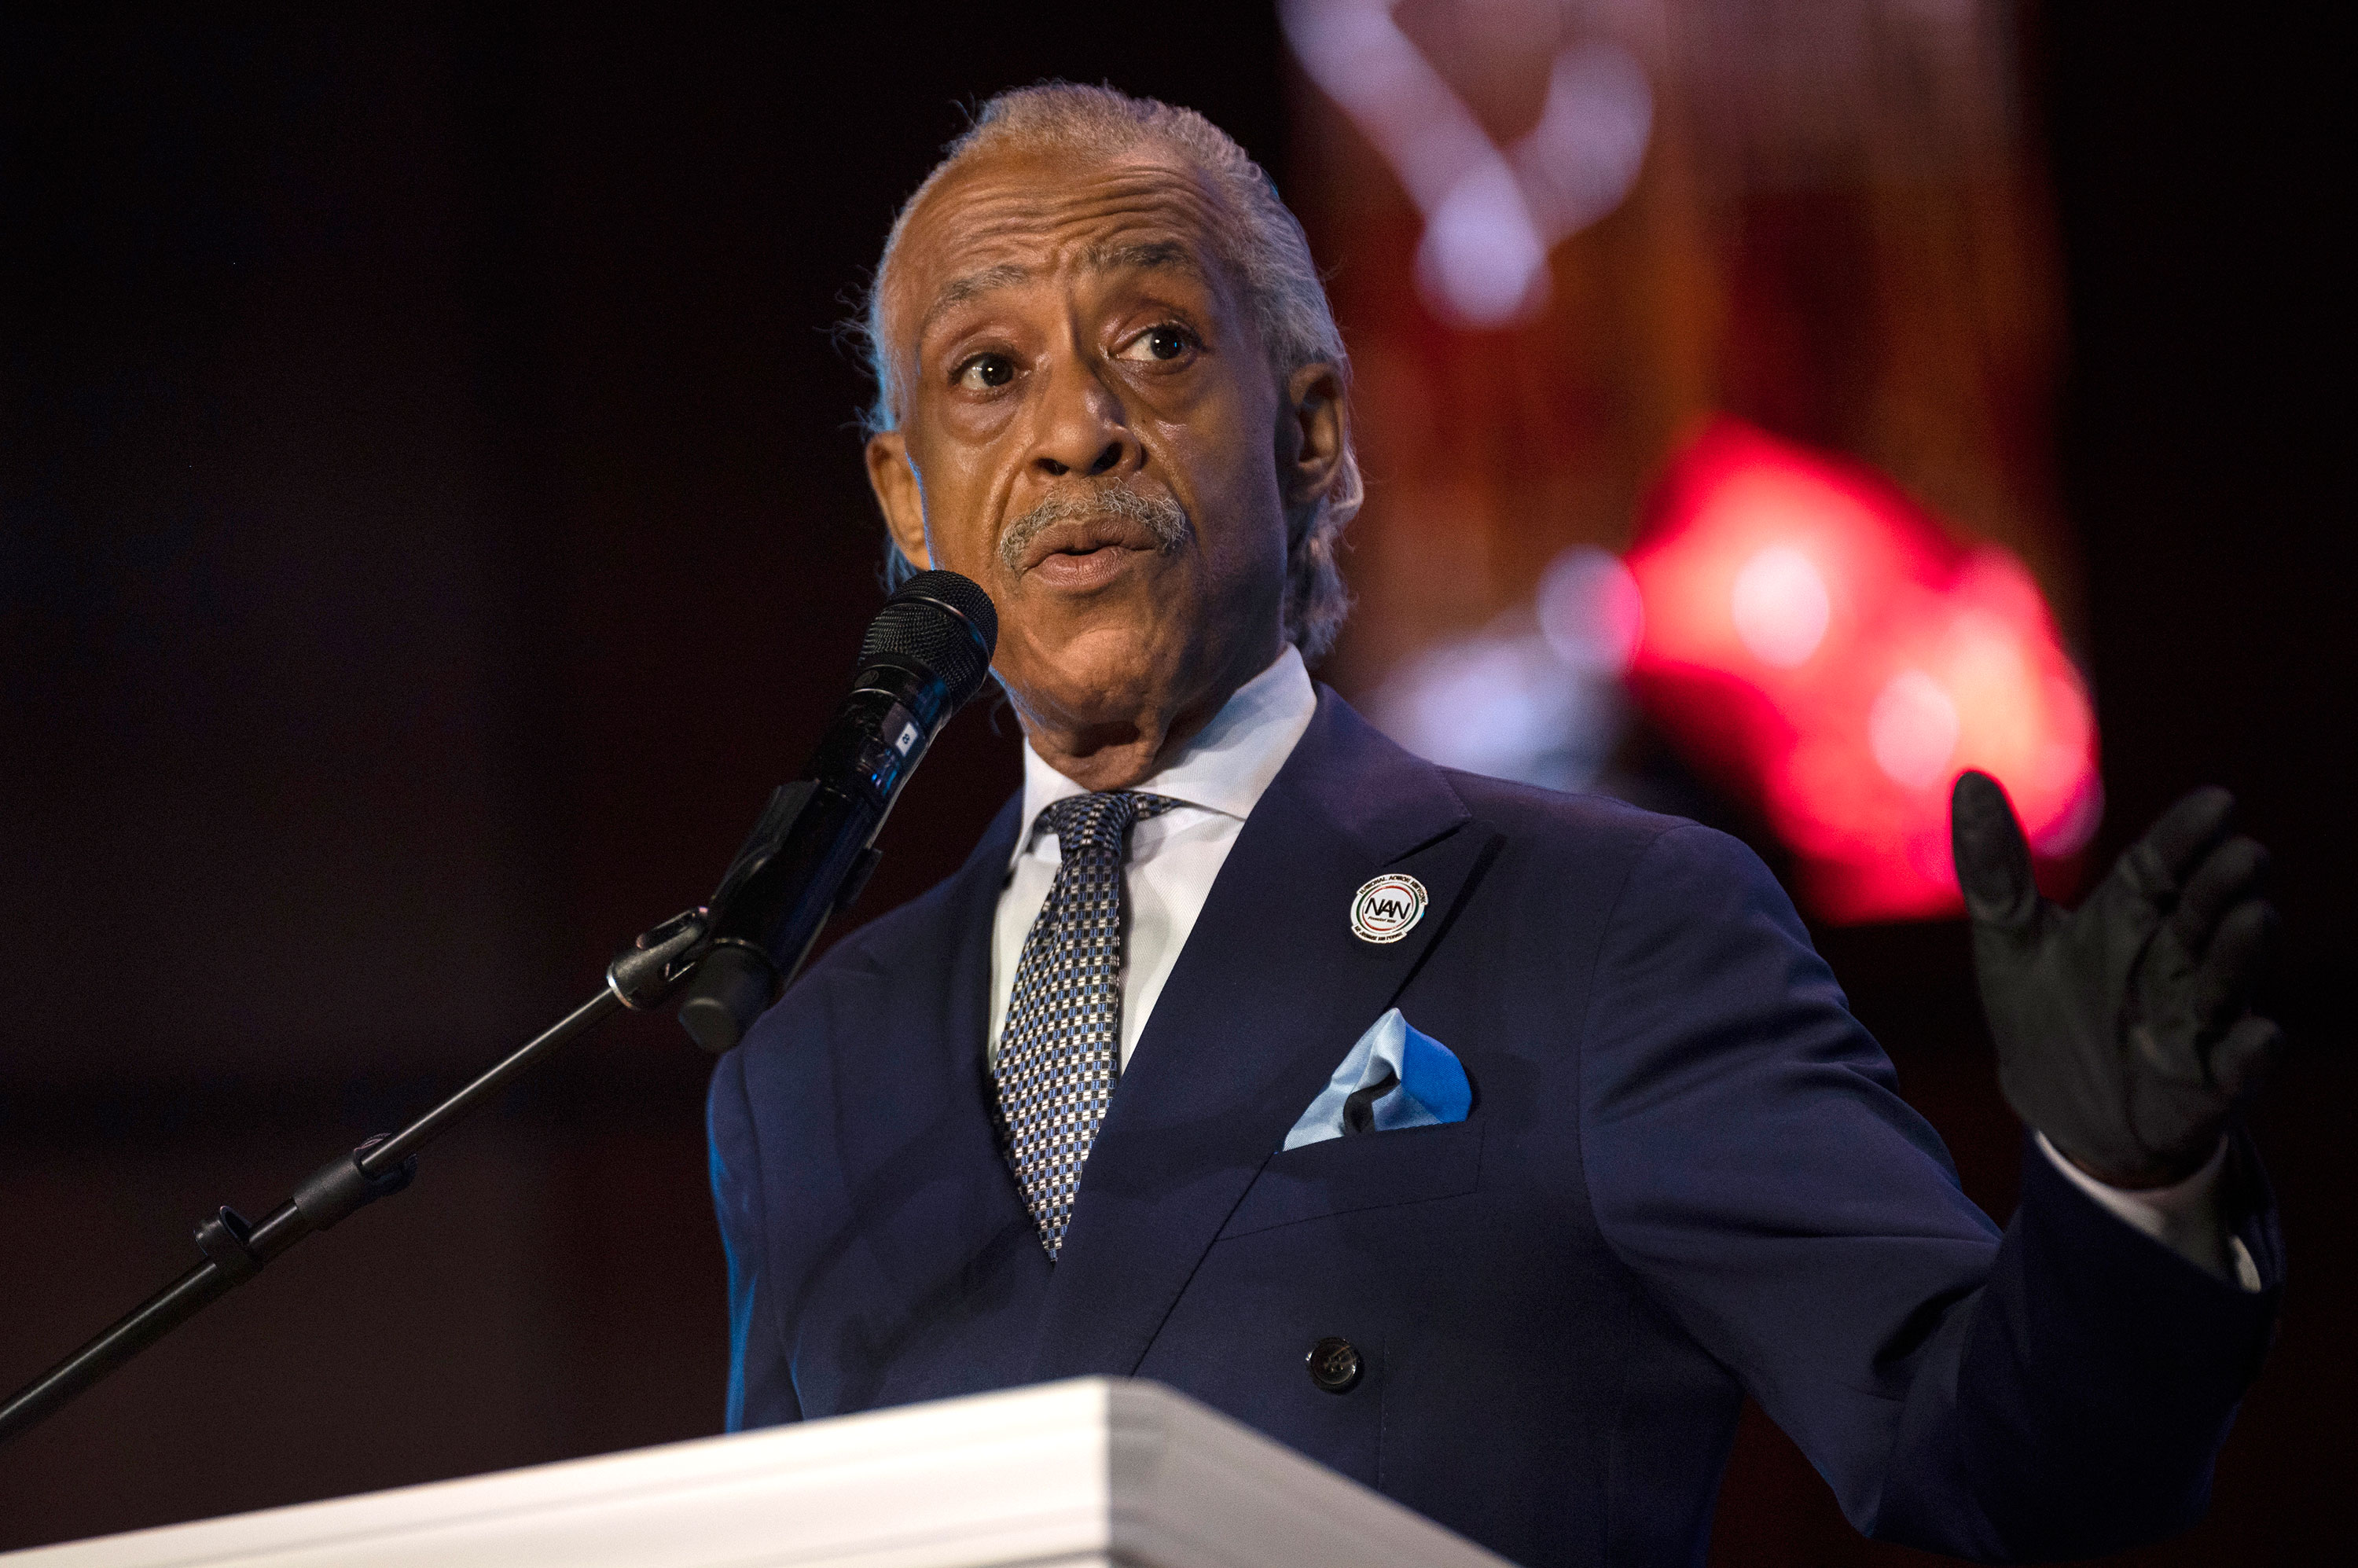 Rev. Al Sharpton speaks at a memorial service for George Floyd on June 4 in Minneapolis, Minnesota.